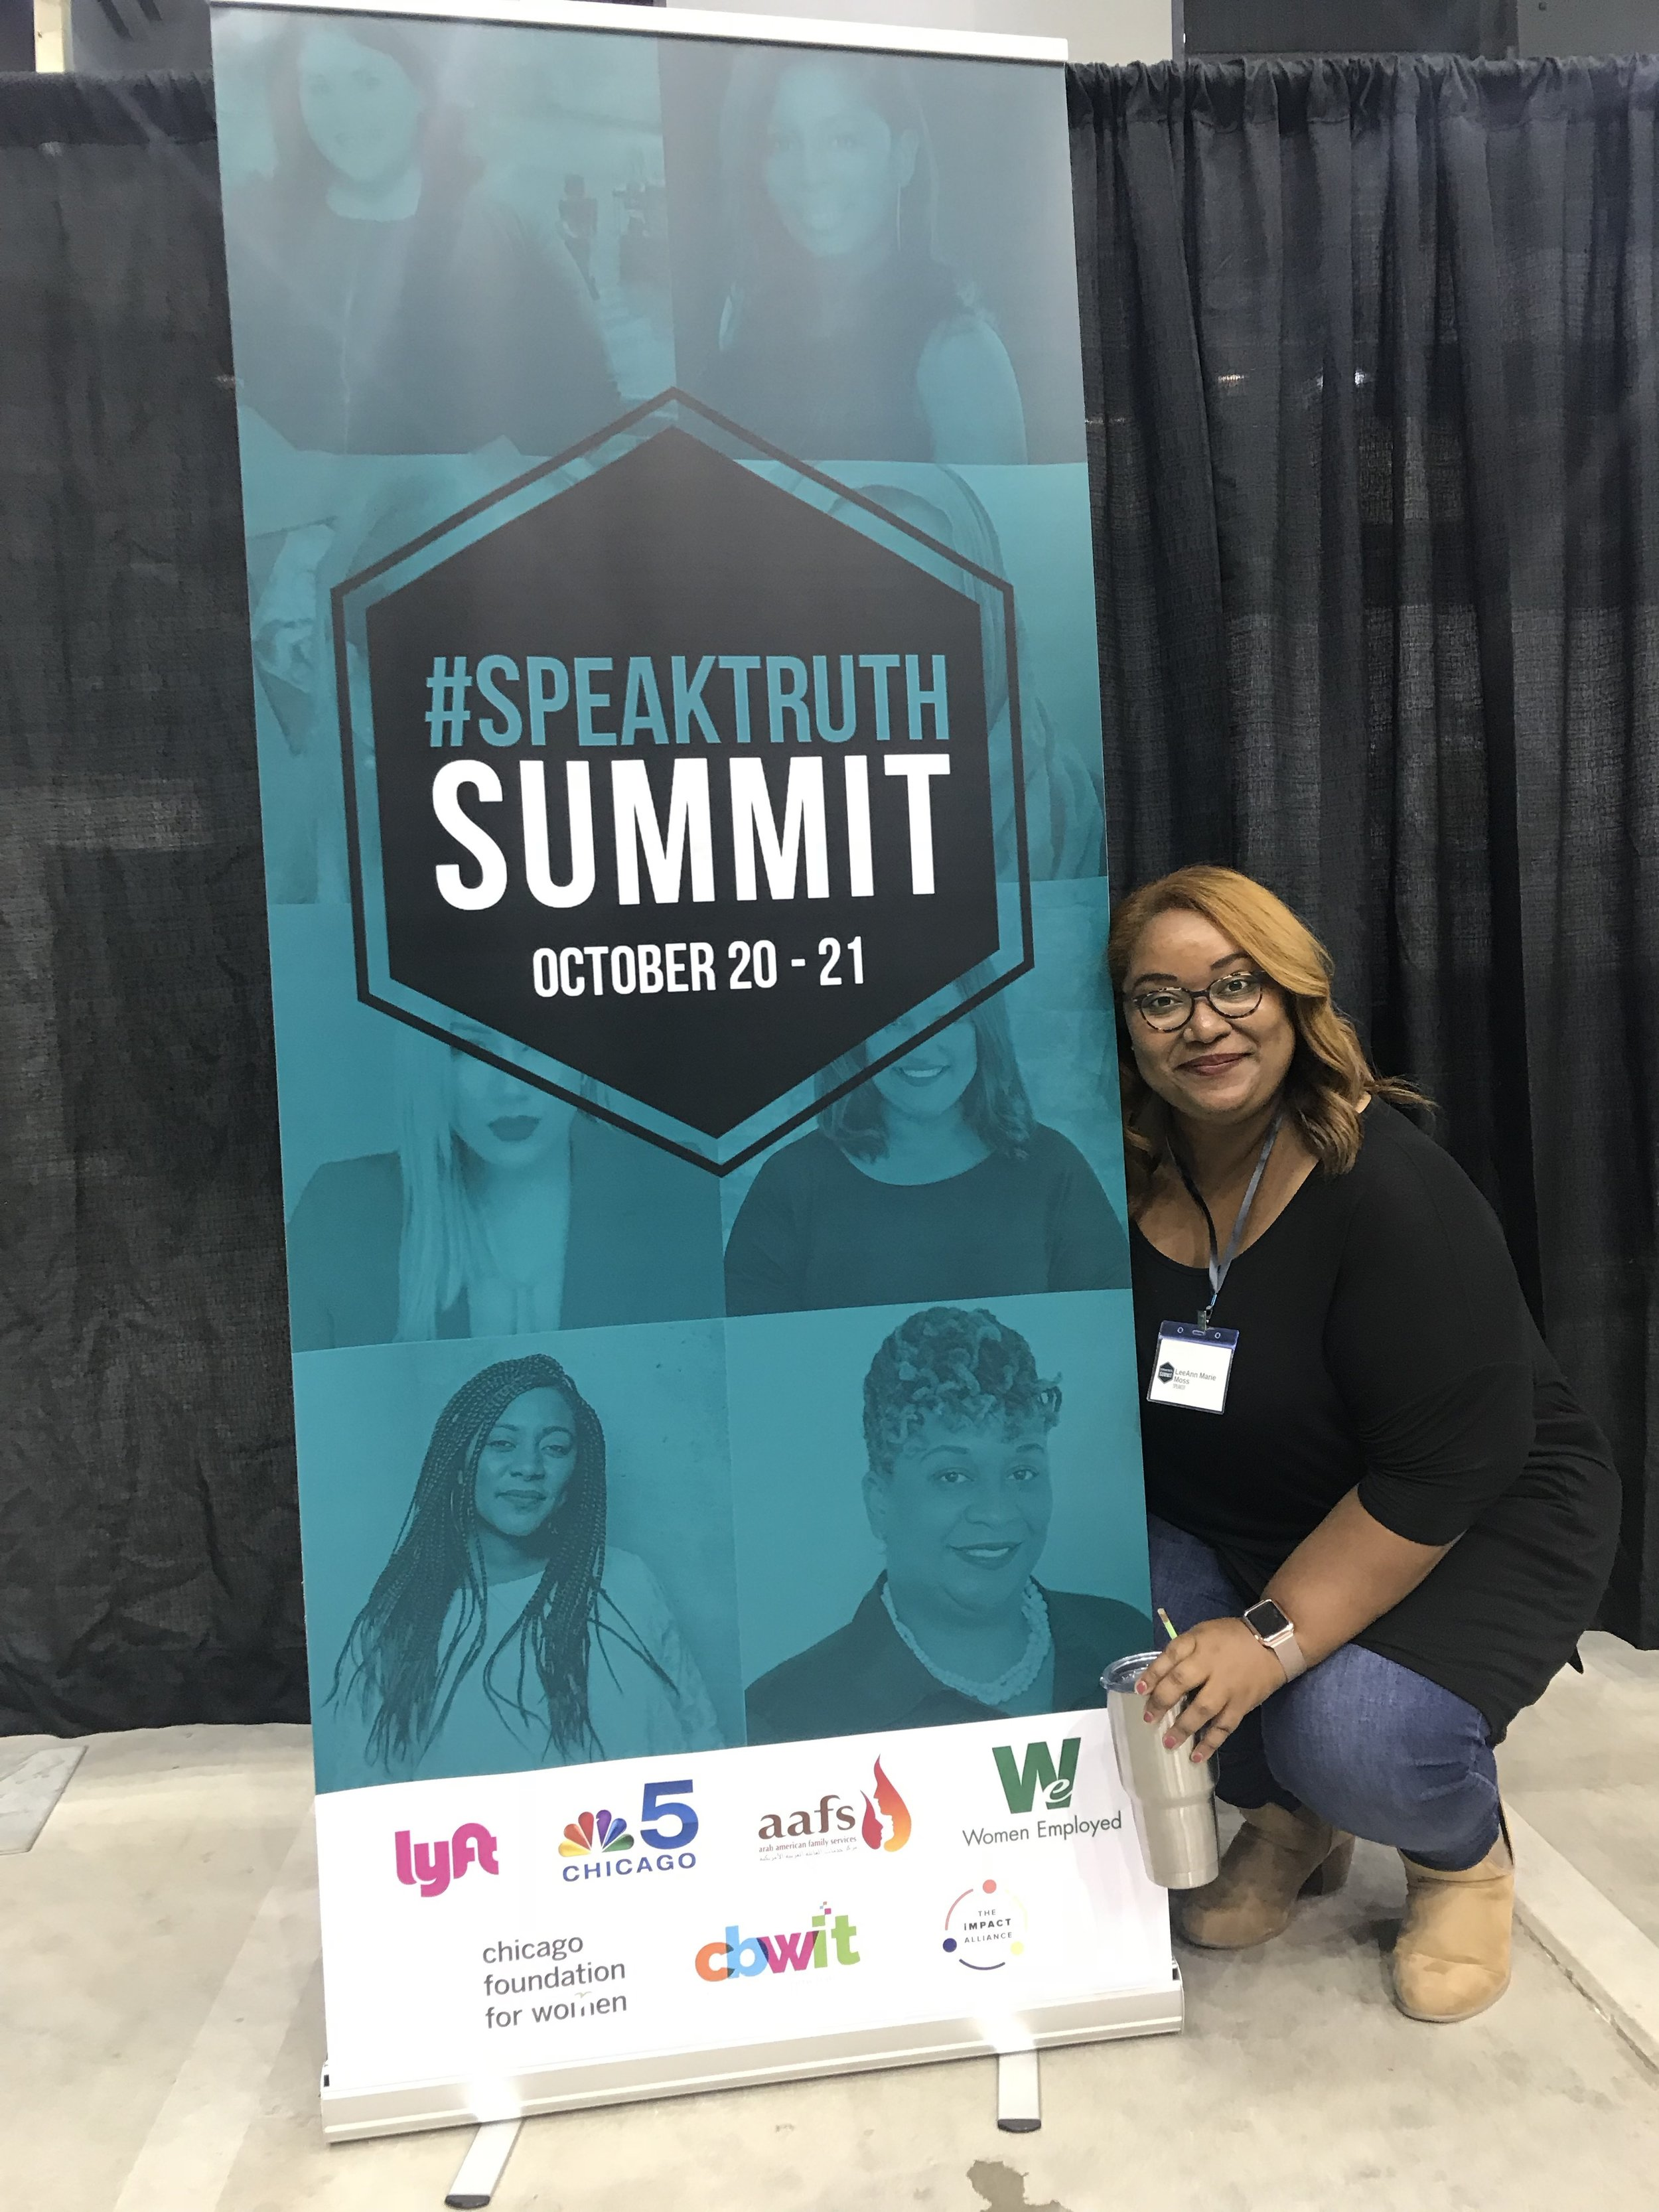 Had an incredible time back in Chicago speaking about purposeful living at the inaugural Speak Truth Summit. Also happy to get a photo with my photo on a banner!